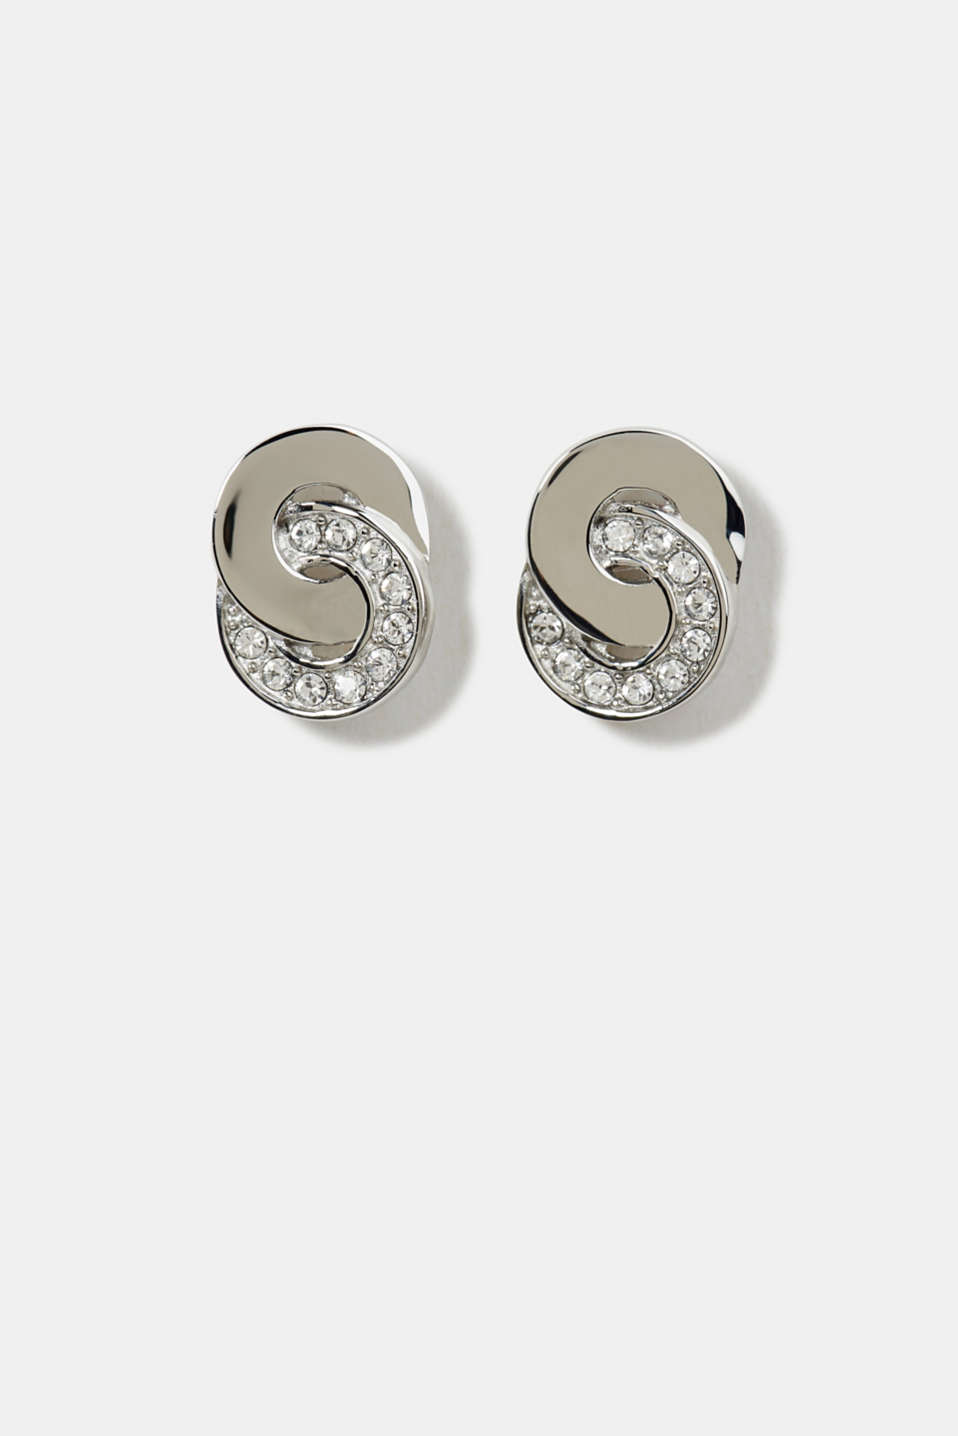 Stainless steel stud earrings with zirconia, LCSILVER, detail image number 0